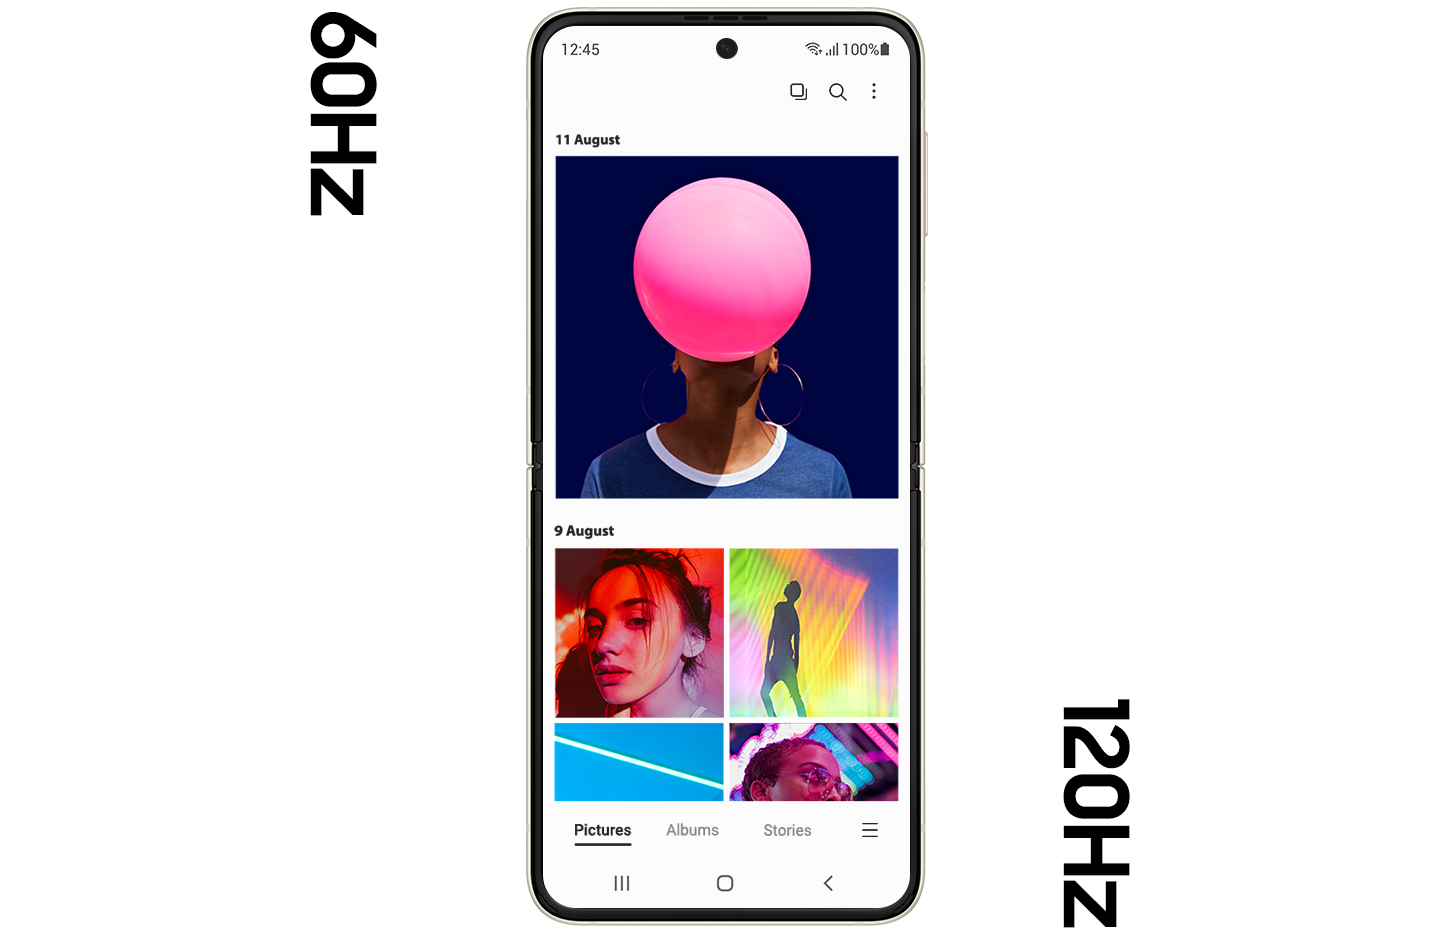 Galaxy Z Flip3 5G unfolded, showing the Gallery app onscreen, with several brightly colored photos onscreen. The screen is slightly blurry, demonstrating the lesser graphic quality of the 60Hz refresh rate. The screen changes to the 120Hz rate and the content onscreen is seen crisp and clear.